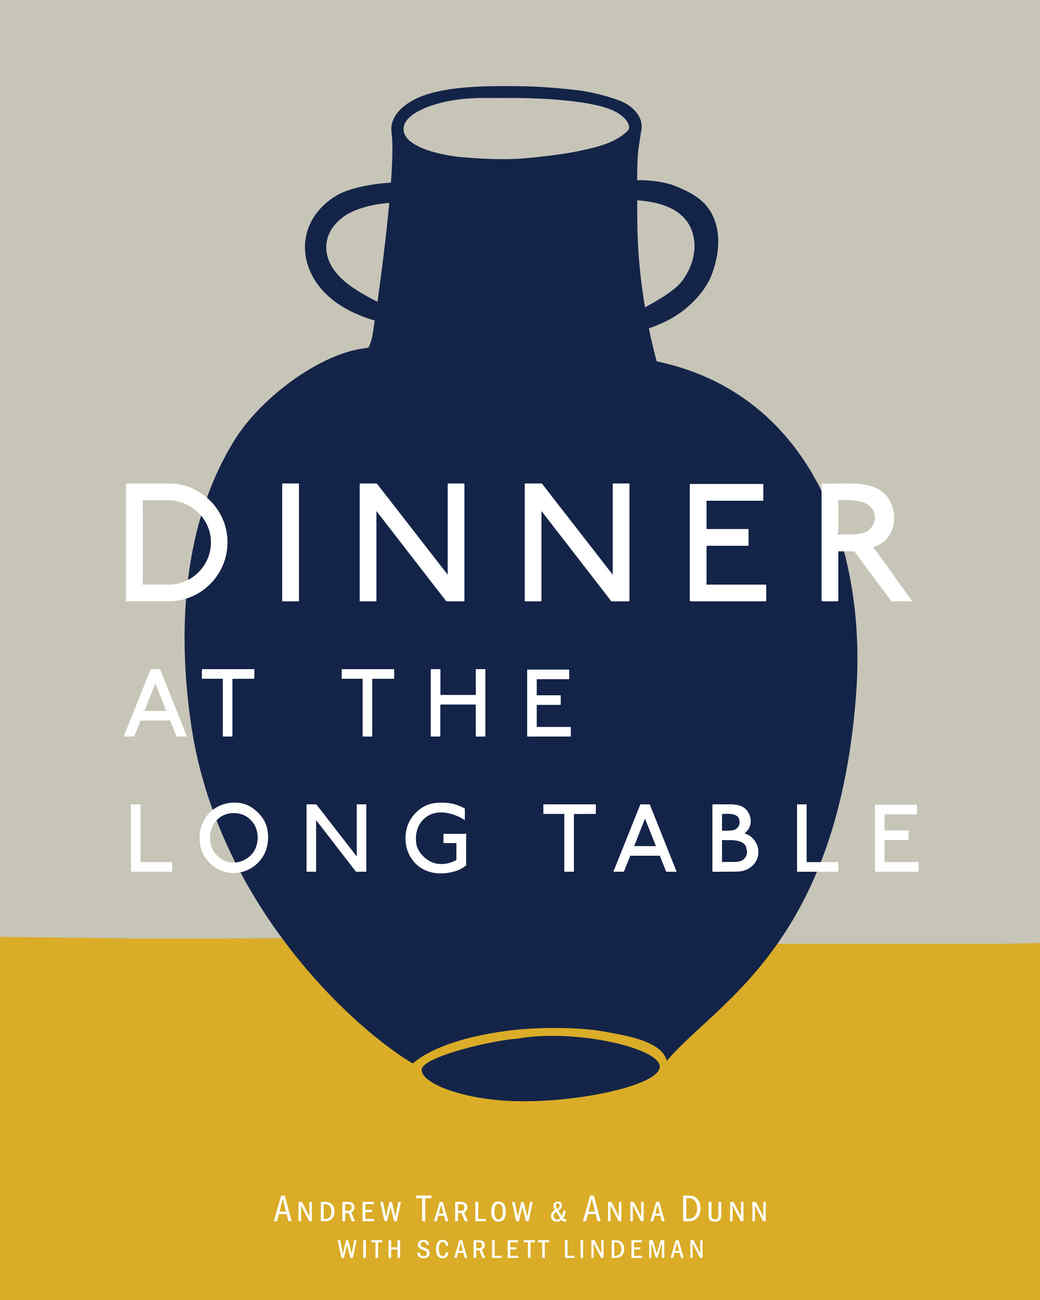 Dinner at the Long Table cookbook cover